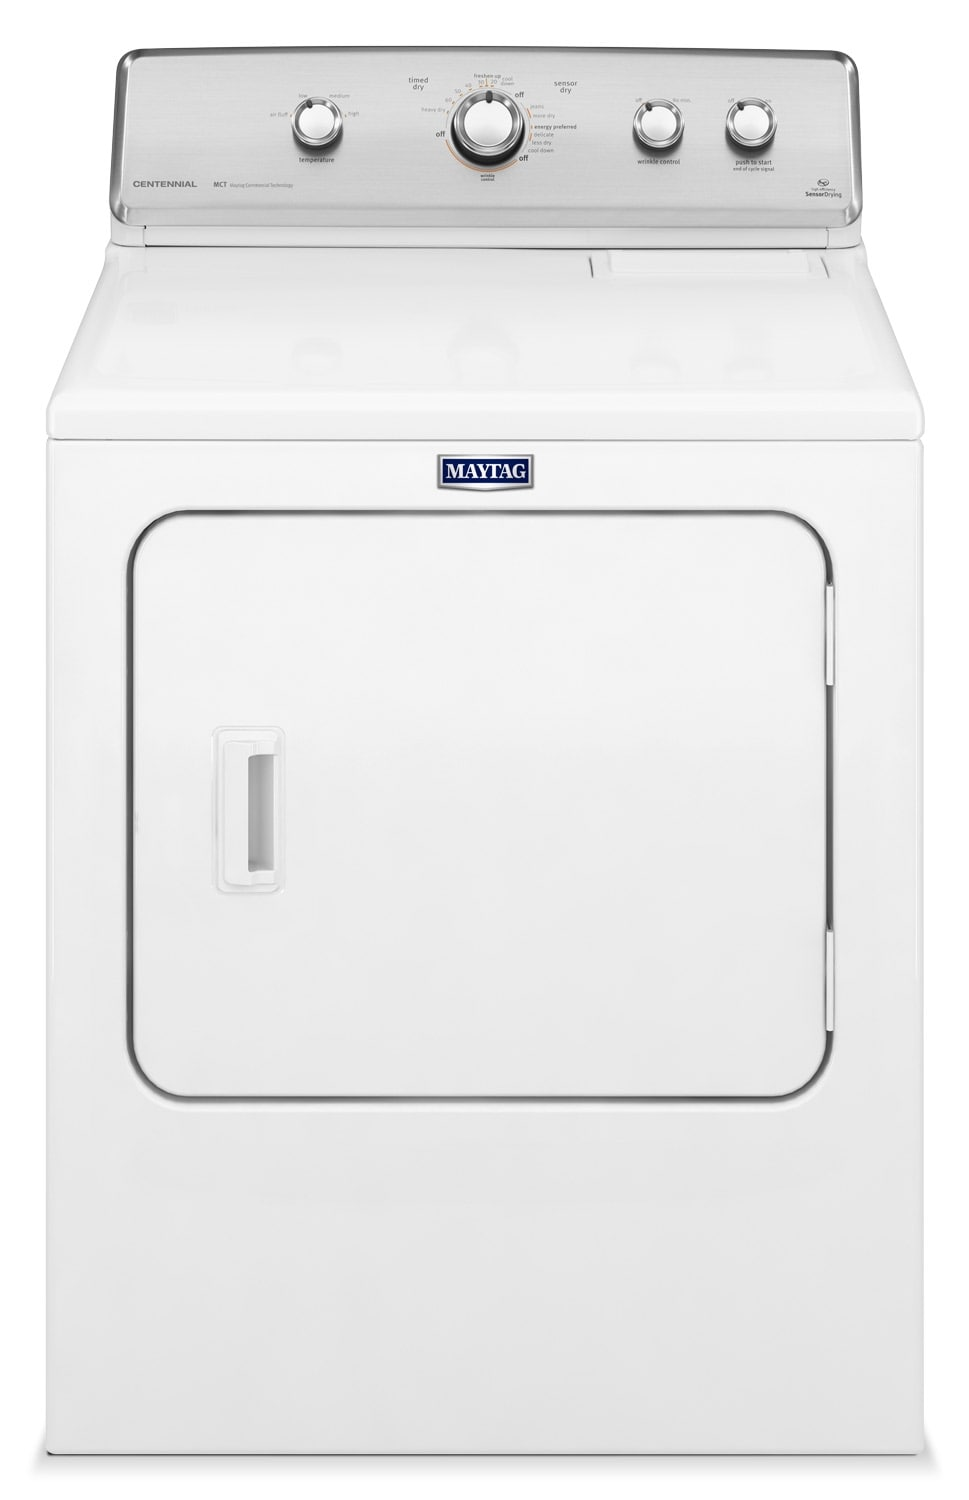 Washers and Dryers - Maytag Centennial® 7.0 Cu. Ft. Electric Dryer – YMEDC555DW